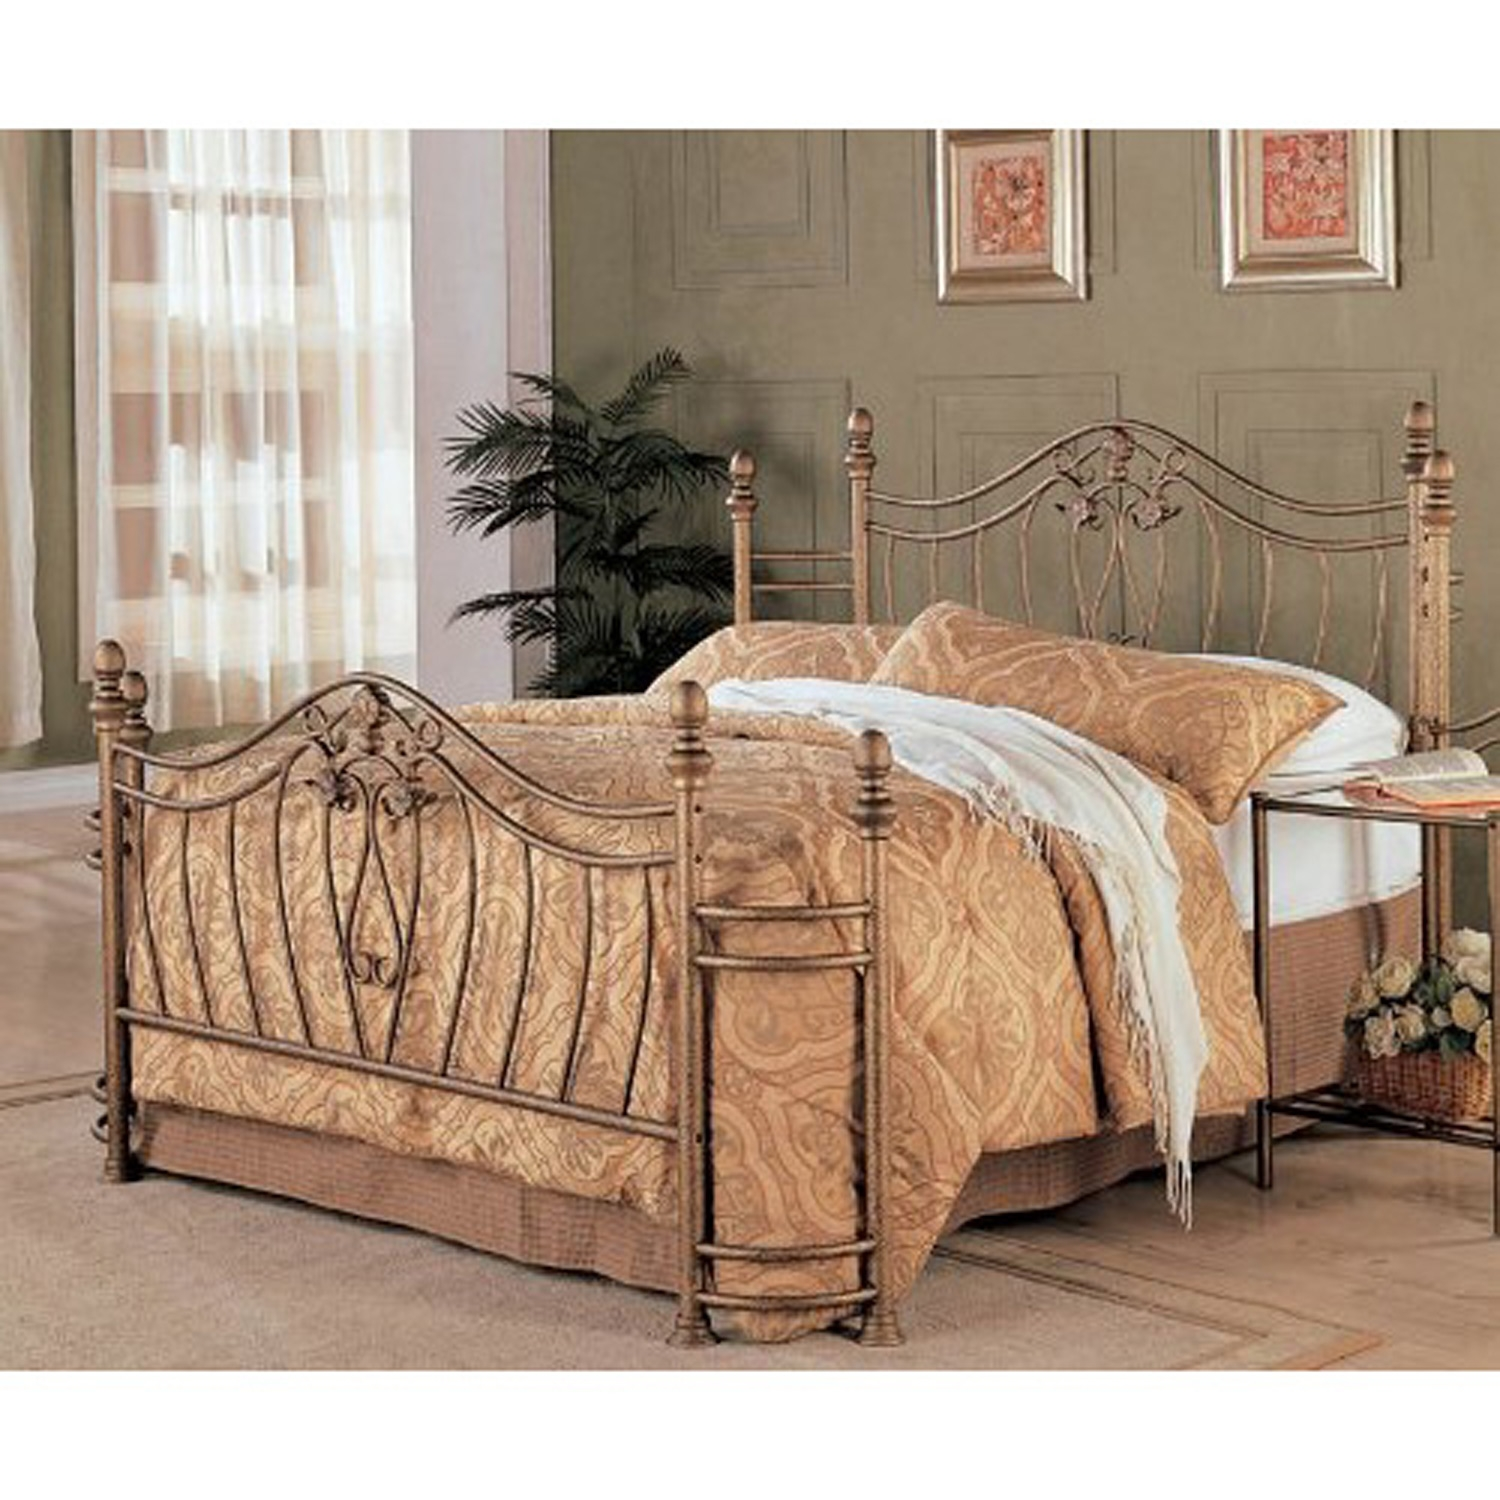 Metal Bed Headboards Queen Size Metal Bed With Headboard And Footboard In Antique Gold Finish